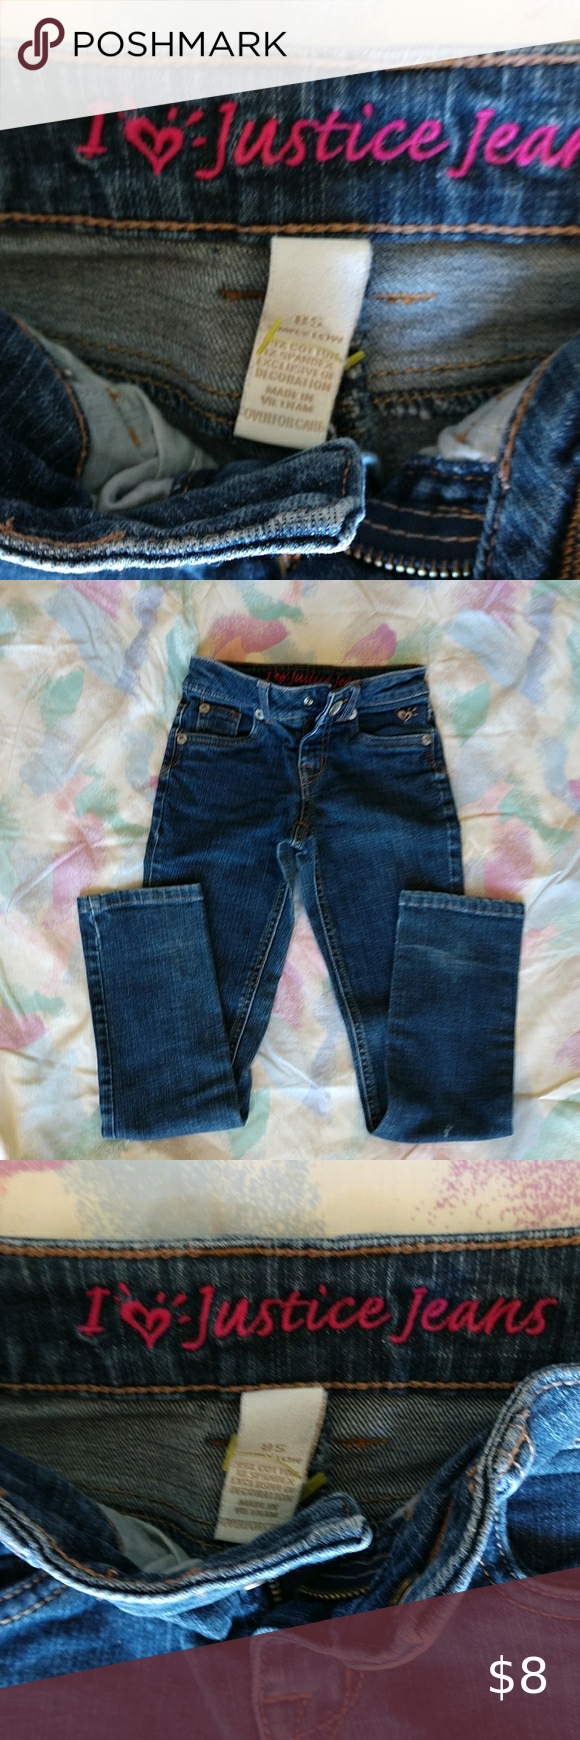 I Love Justice Jeans Girls Skinny Jeans Size 8 S Girls Skinny Jeans Girls Jeans Skinny Jeans